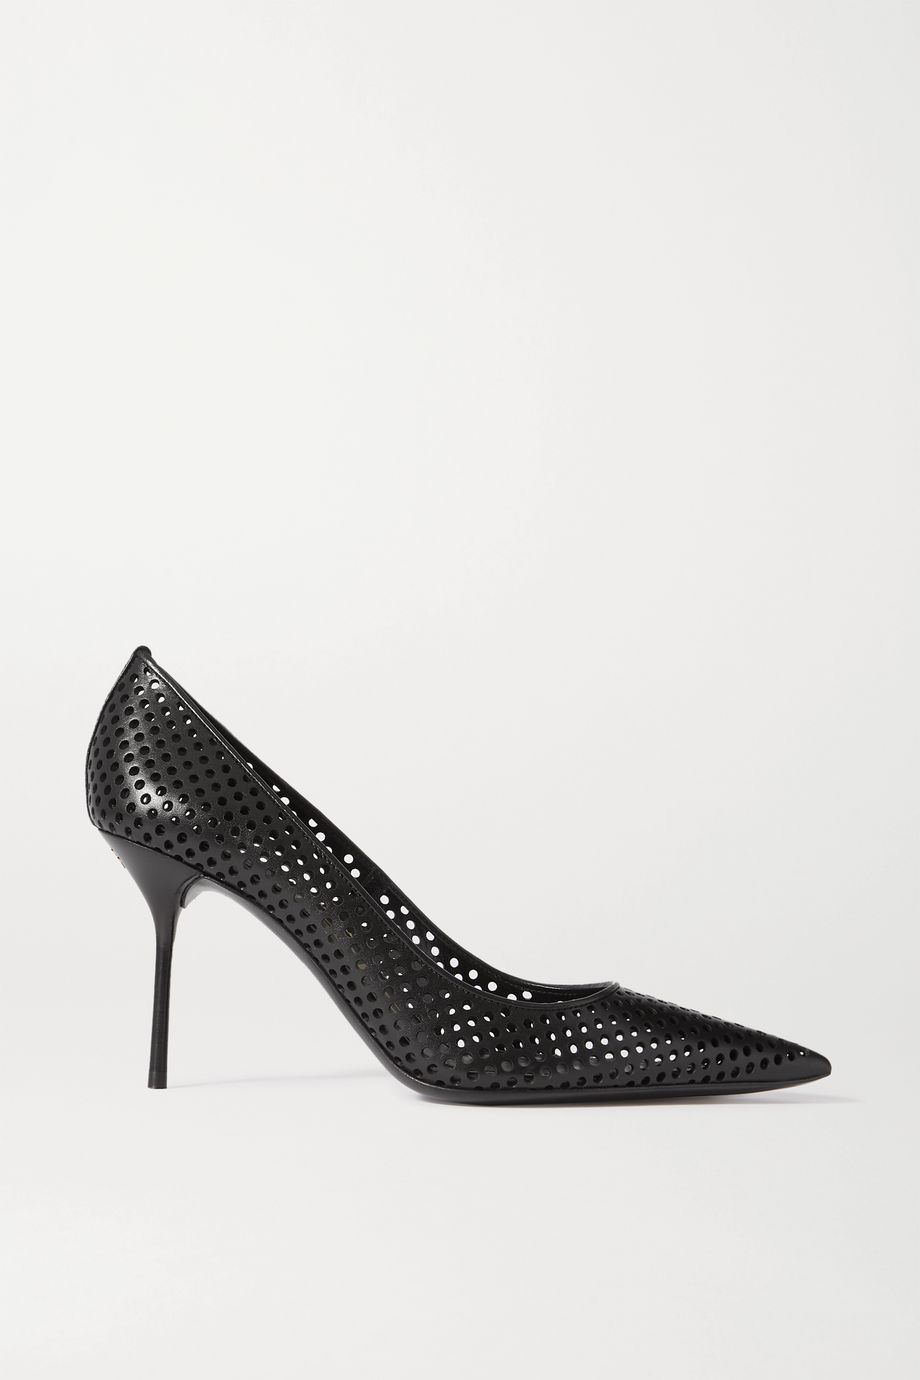 TOM FORD Perforated leather pumps